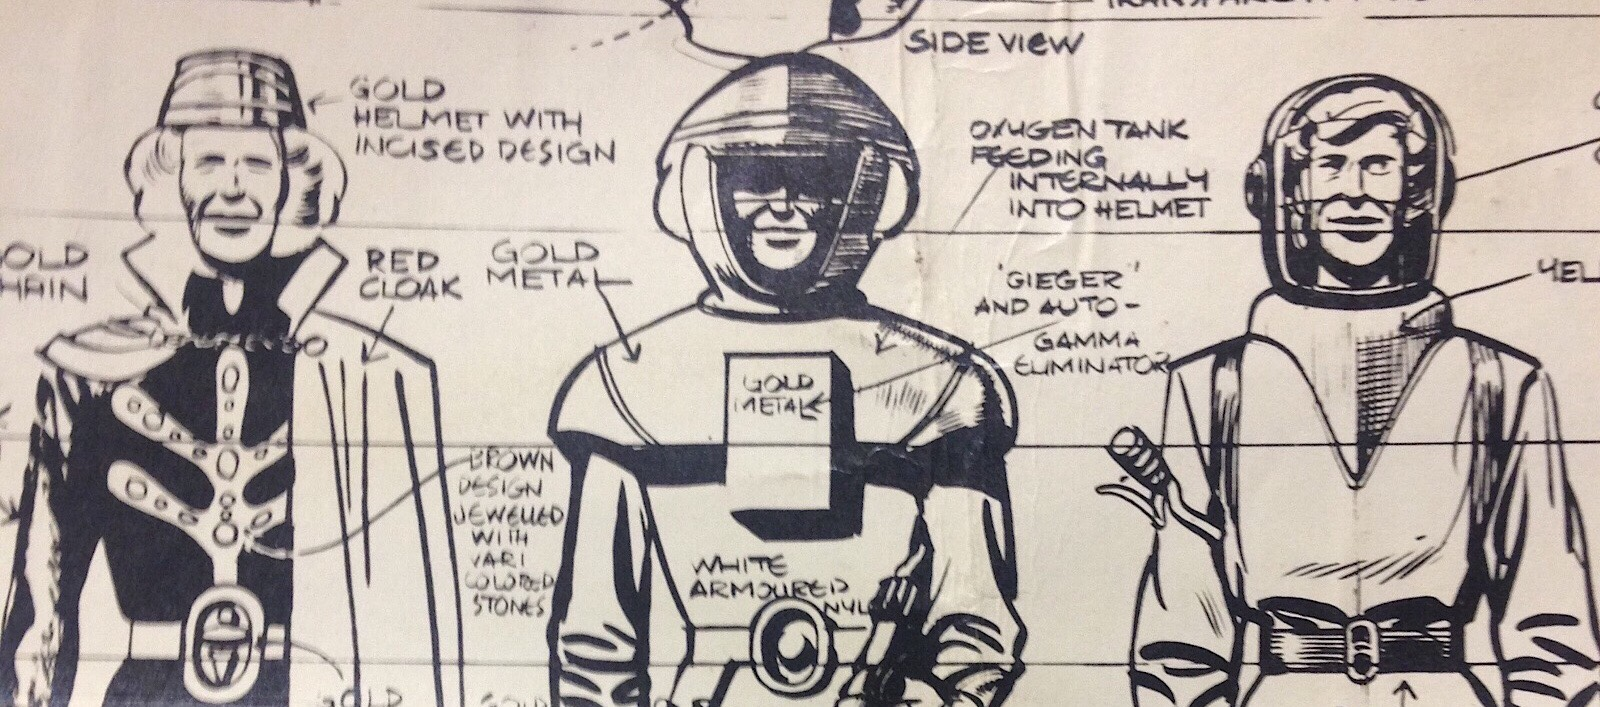 Dan Dare Concept art for the original Eagle SNIP